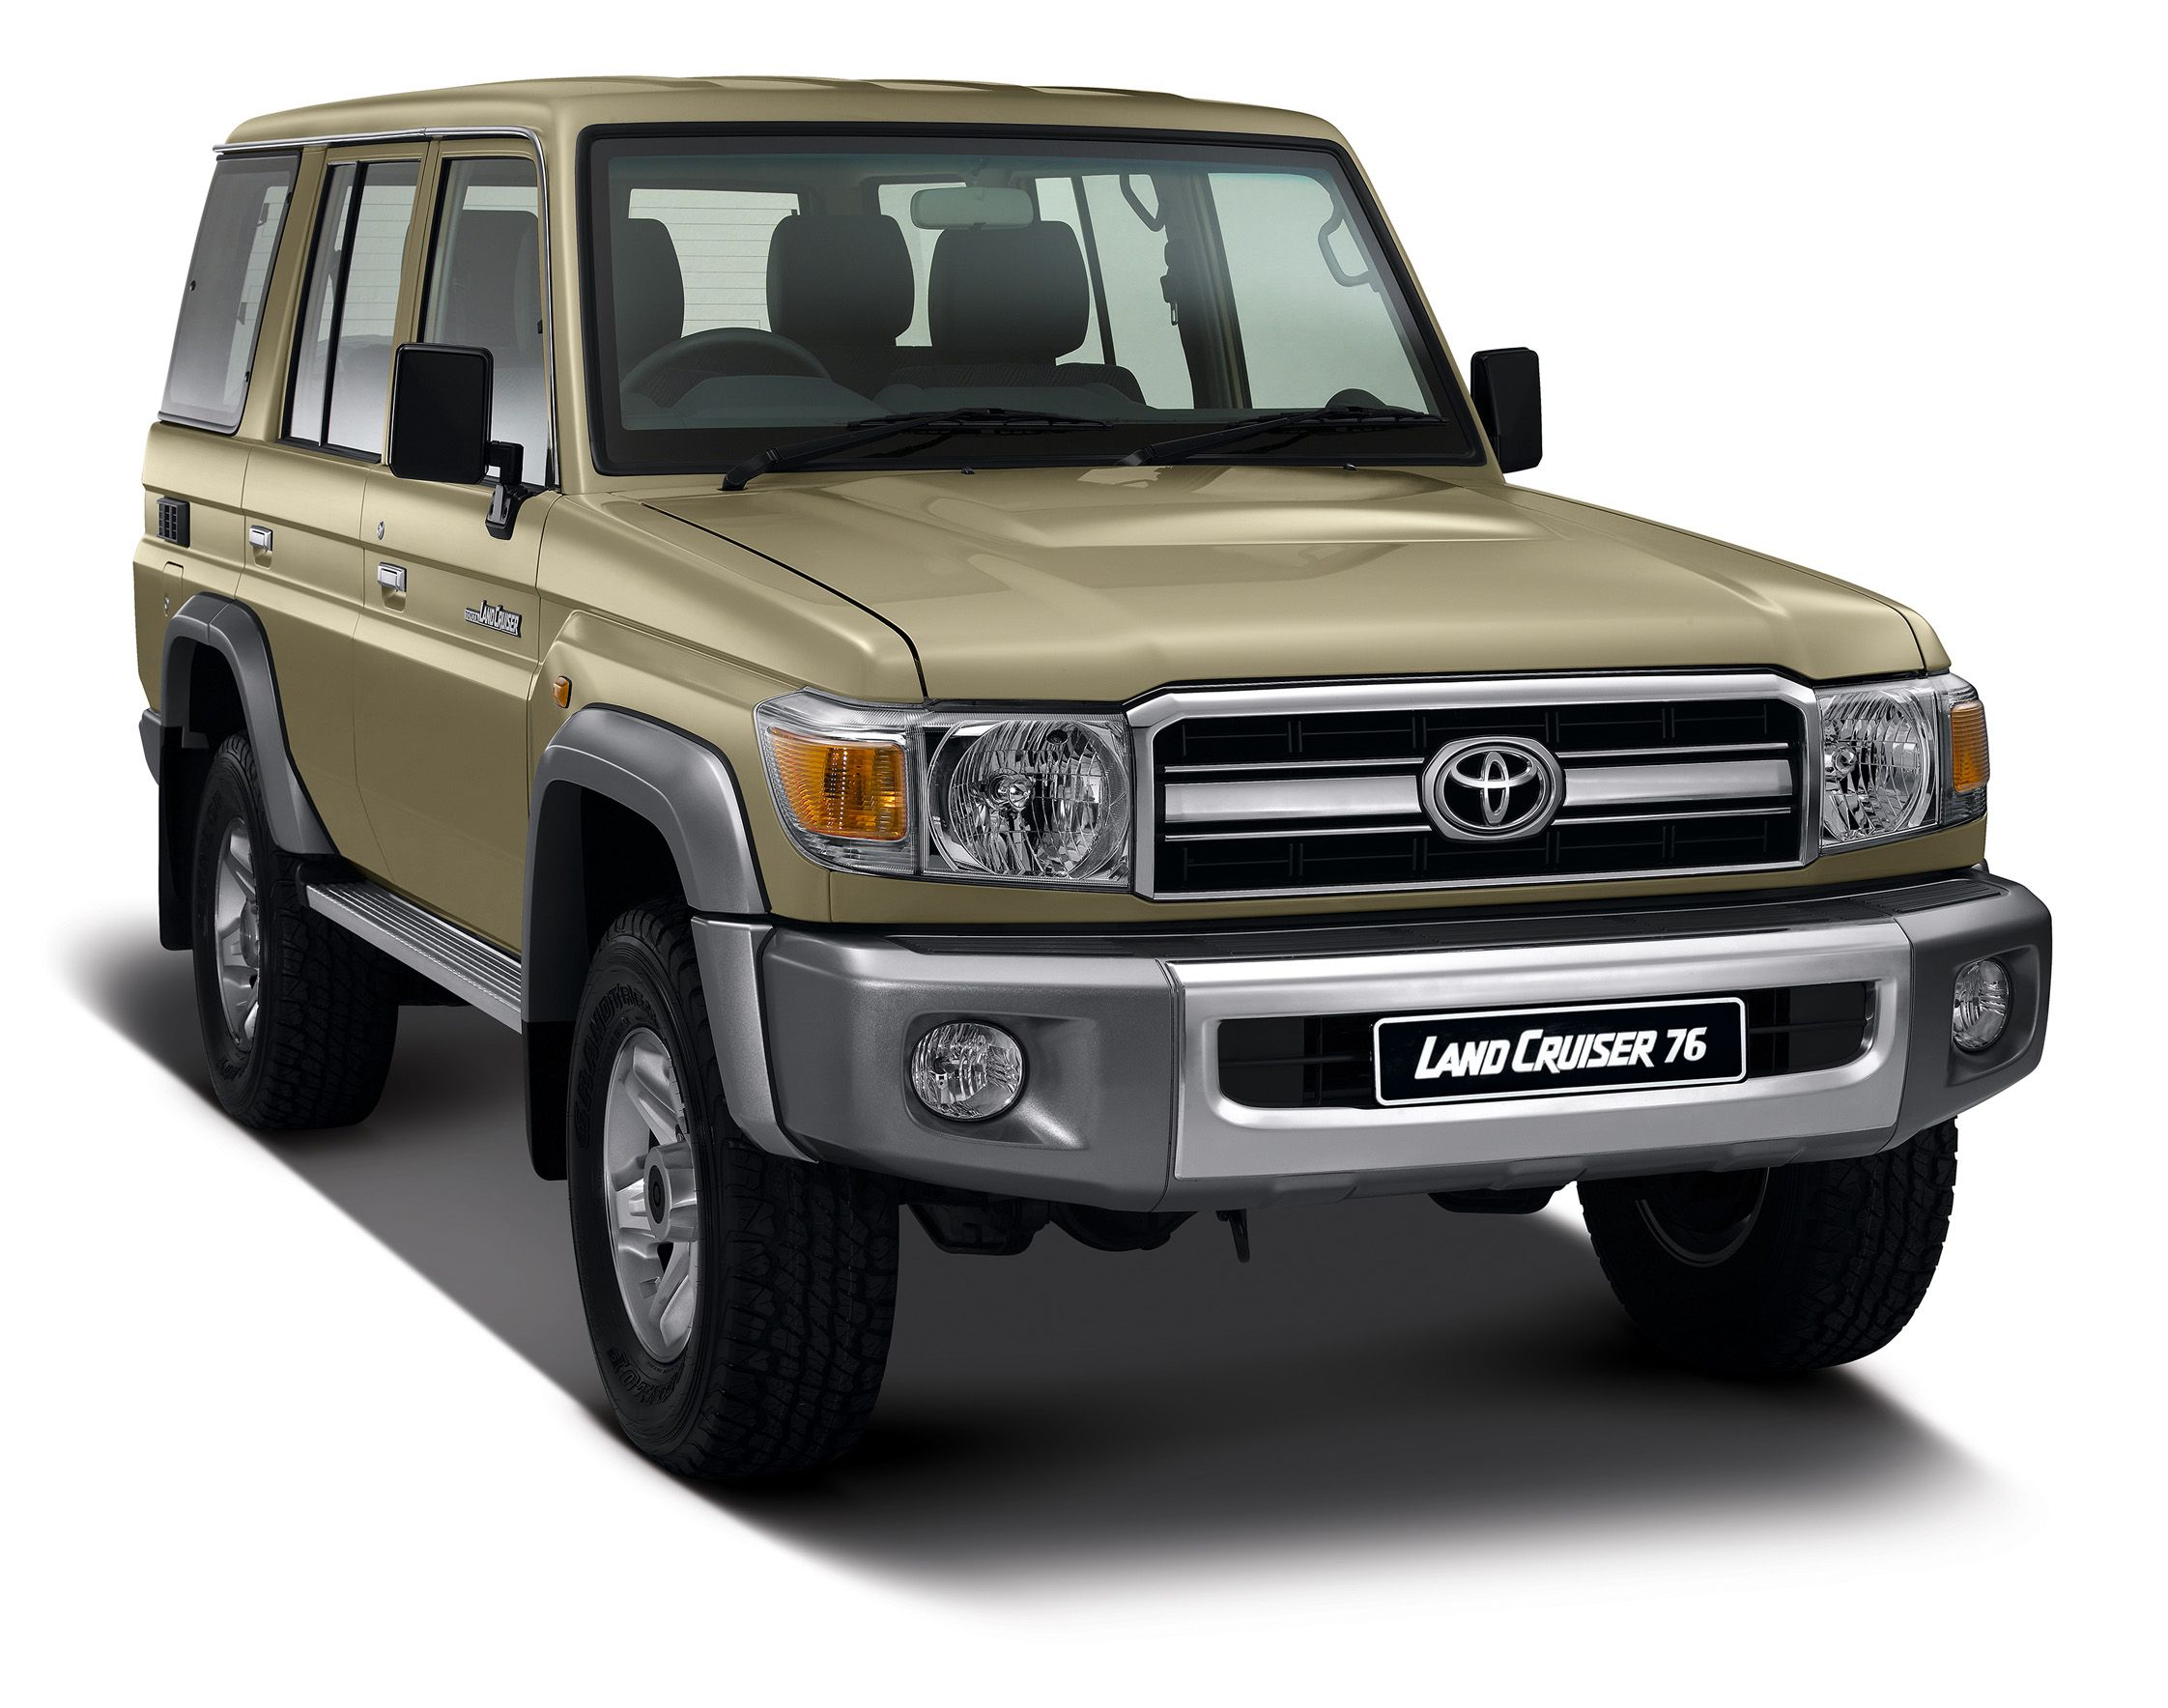 Land cruiser 70 series expanded